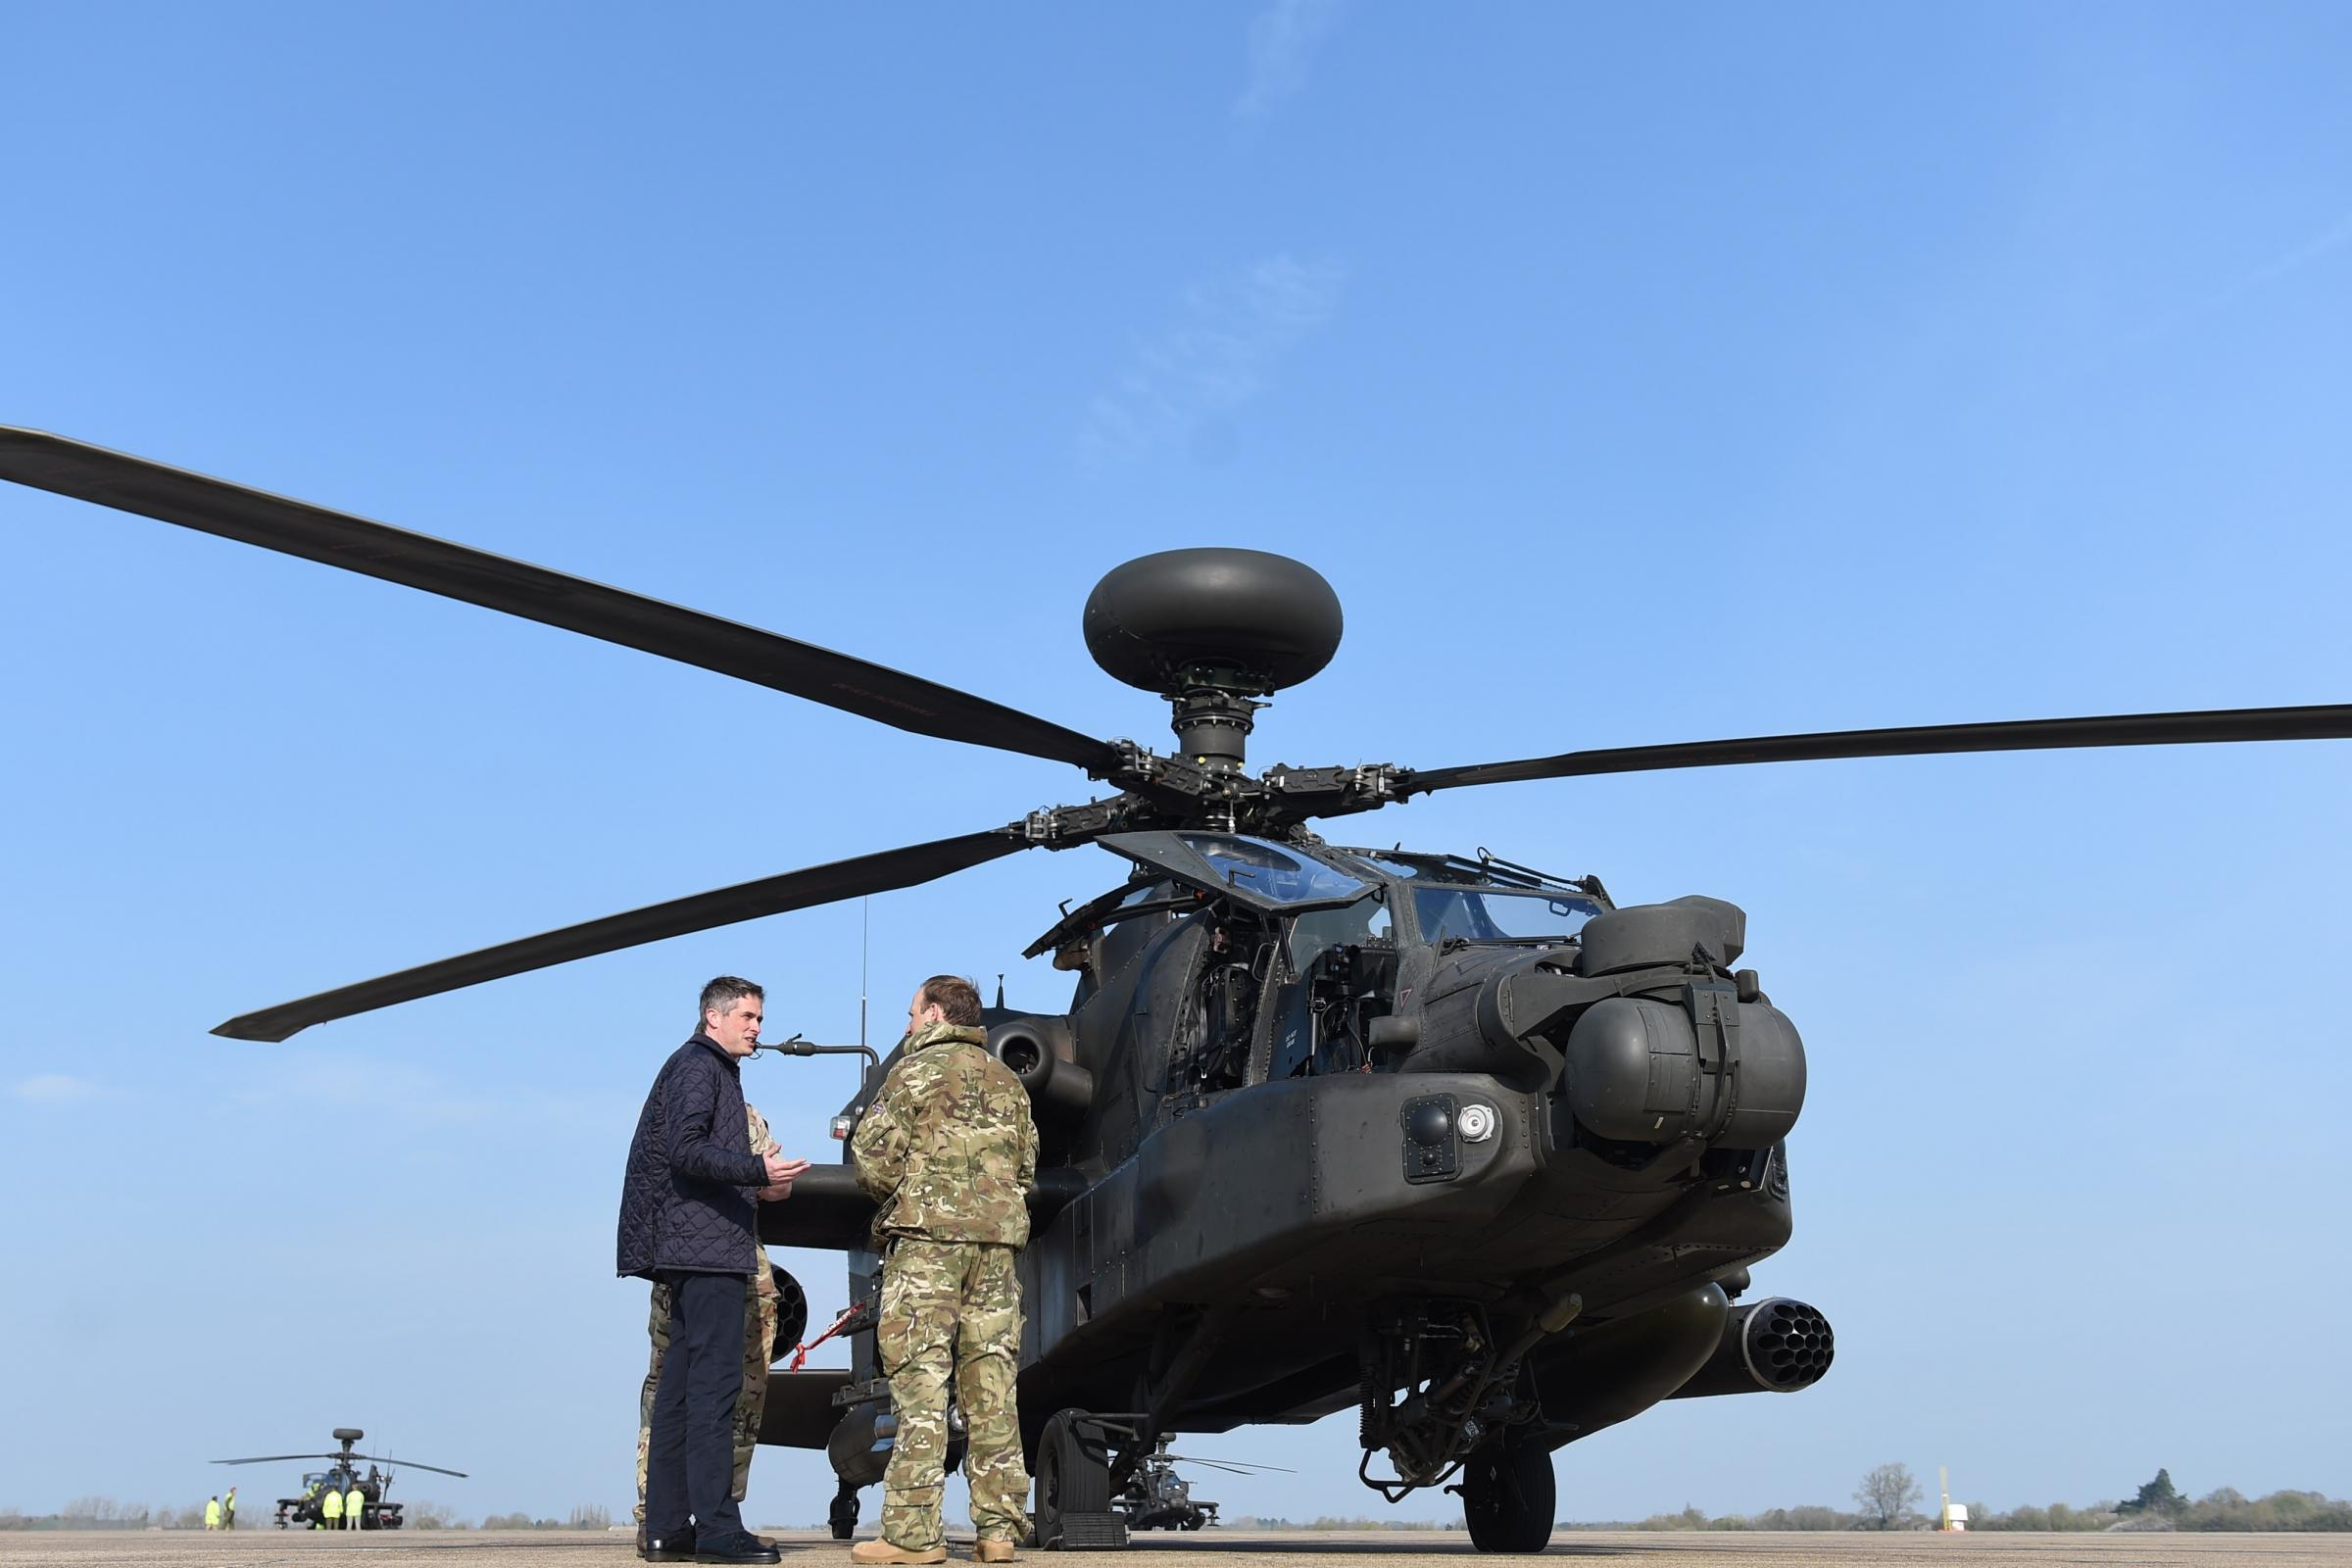 Defence Secretary Gavin Williamson next to an Apache helicopter at Wattisham Airfield in Suffolk